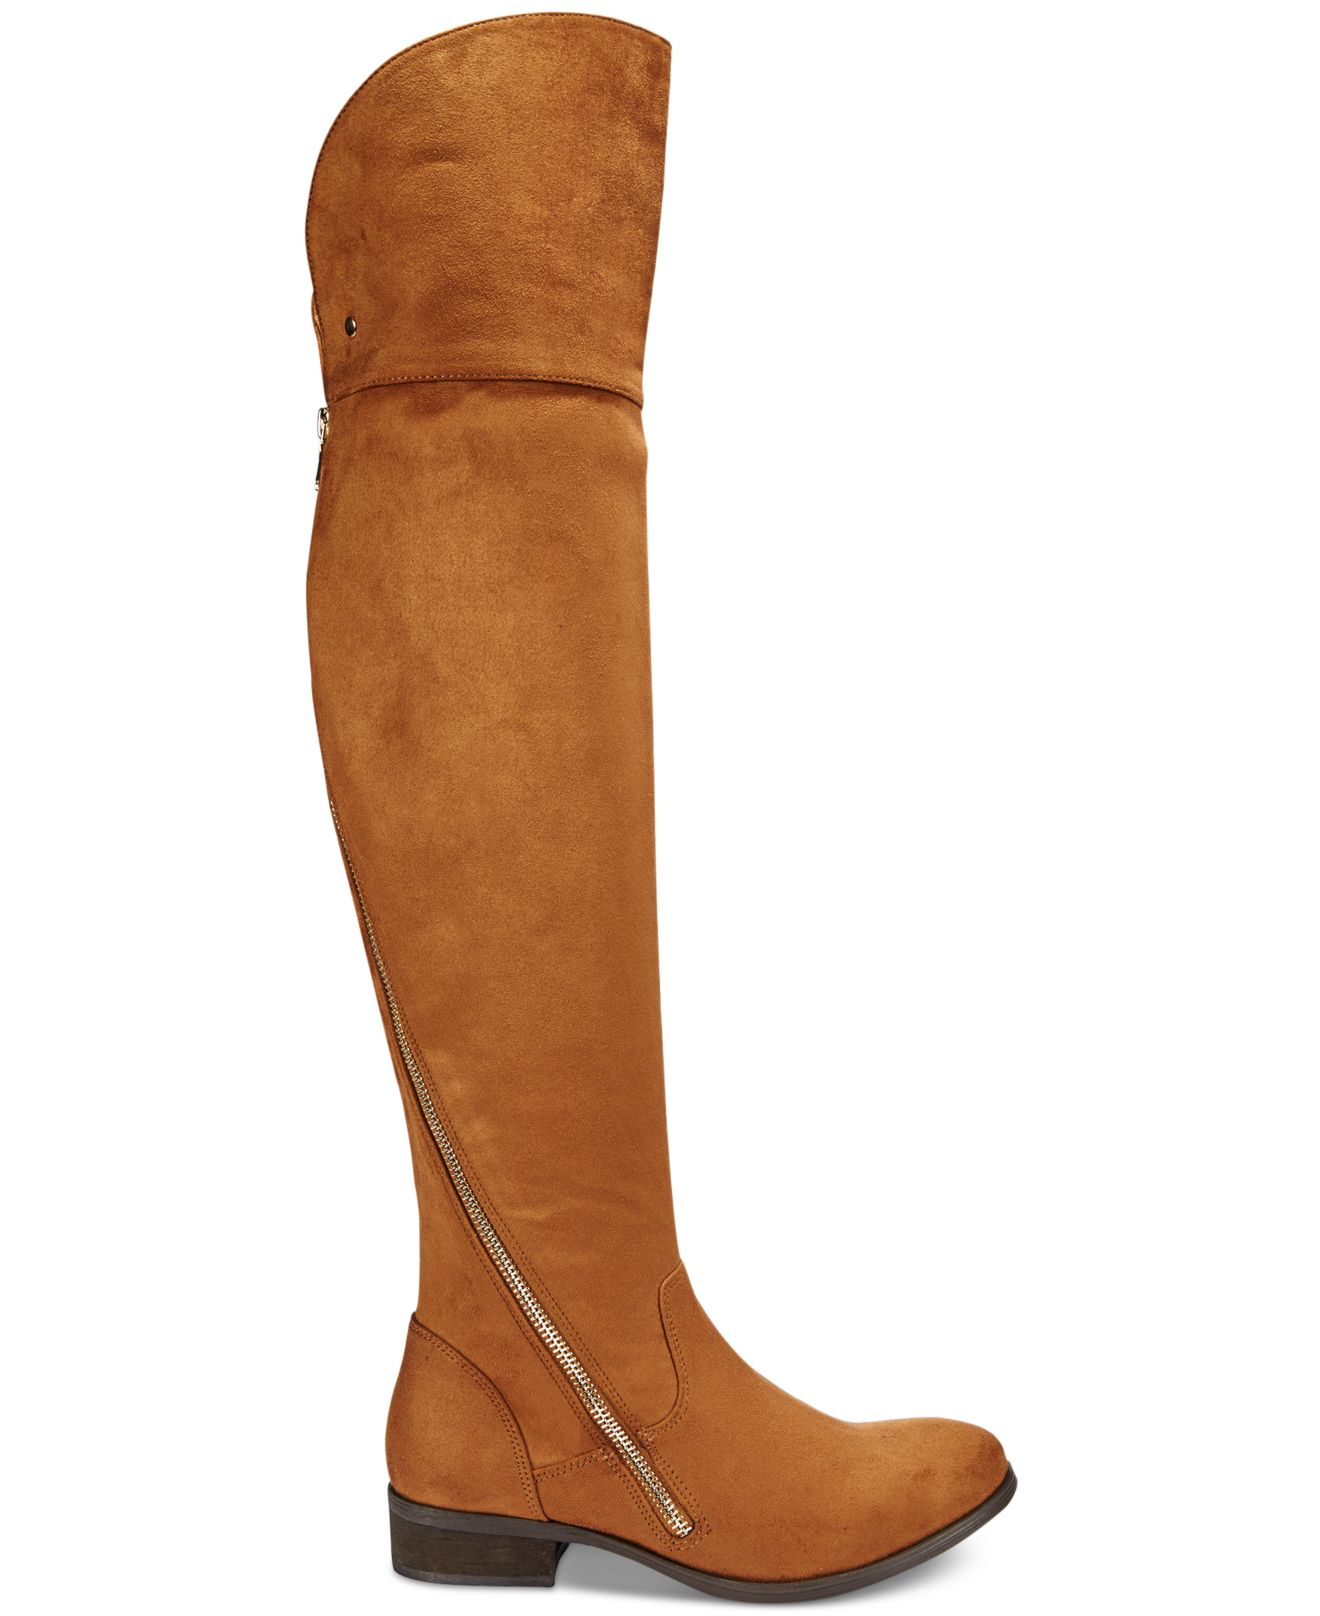 boots report Think striking shapes, new textures and runway-inspired tapestry we just can't get enough of these standout shoes totally free shipping & returns.